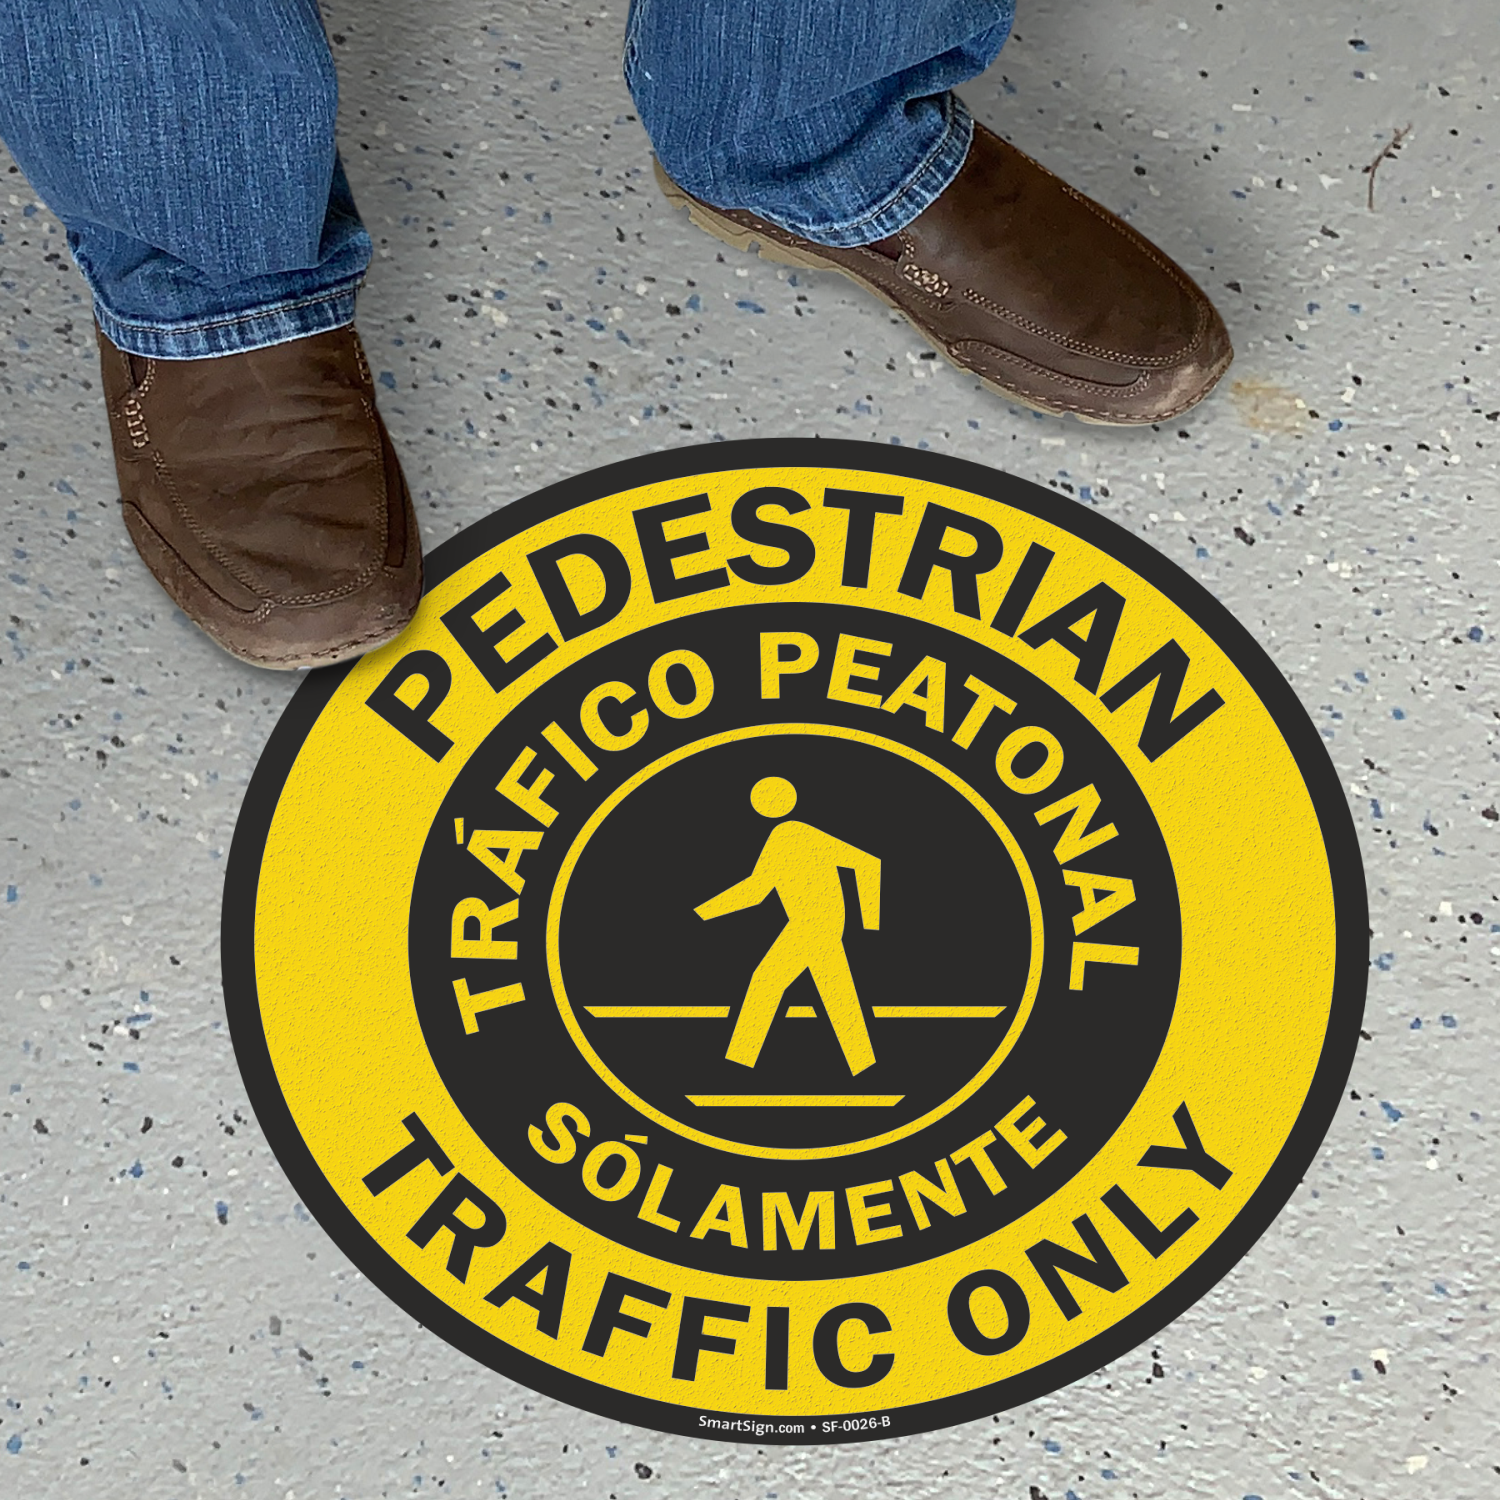 Pedestrian Traffic Only, Trafico Peatonal Solamente Floor Sign